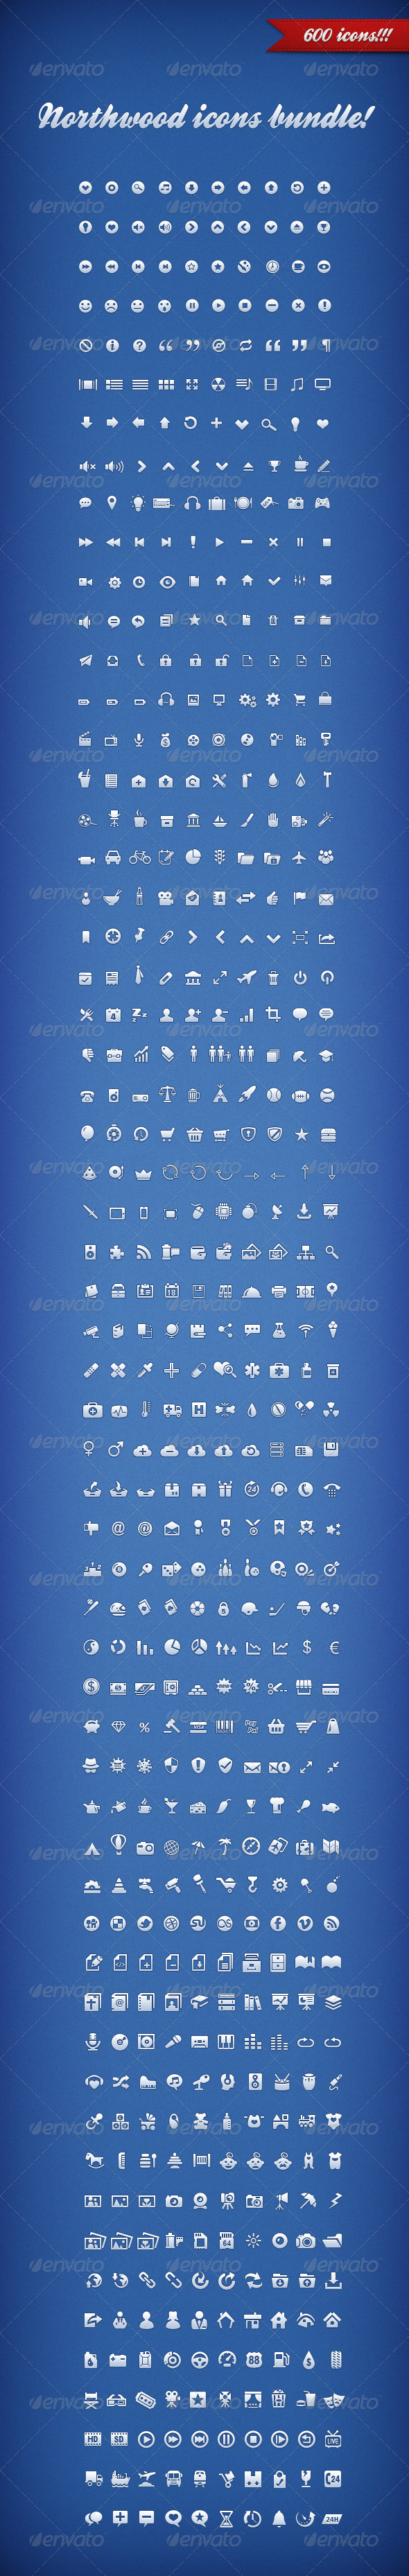 GraphicRiver Northwood Icons Bundle 4170471